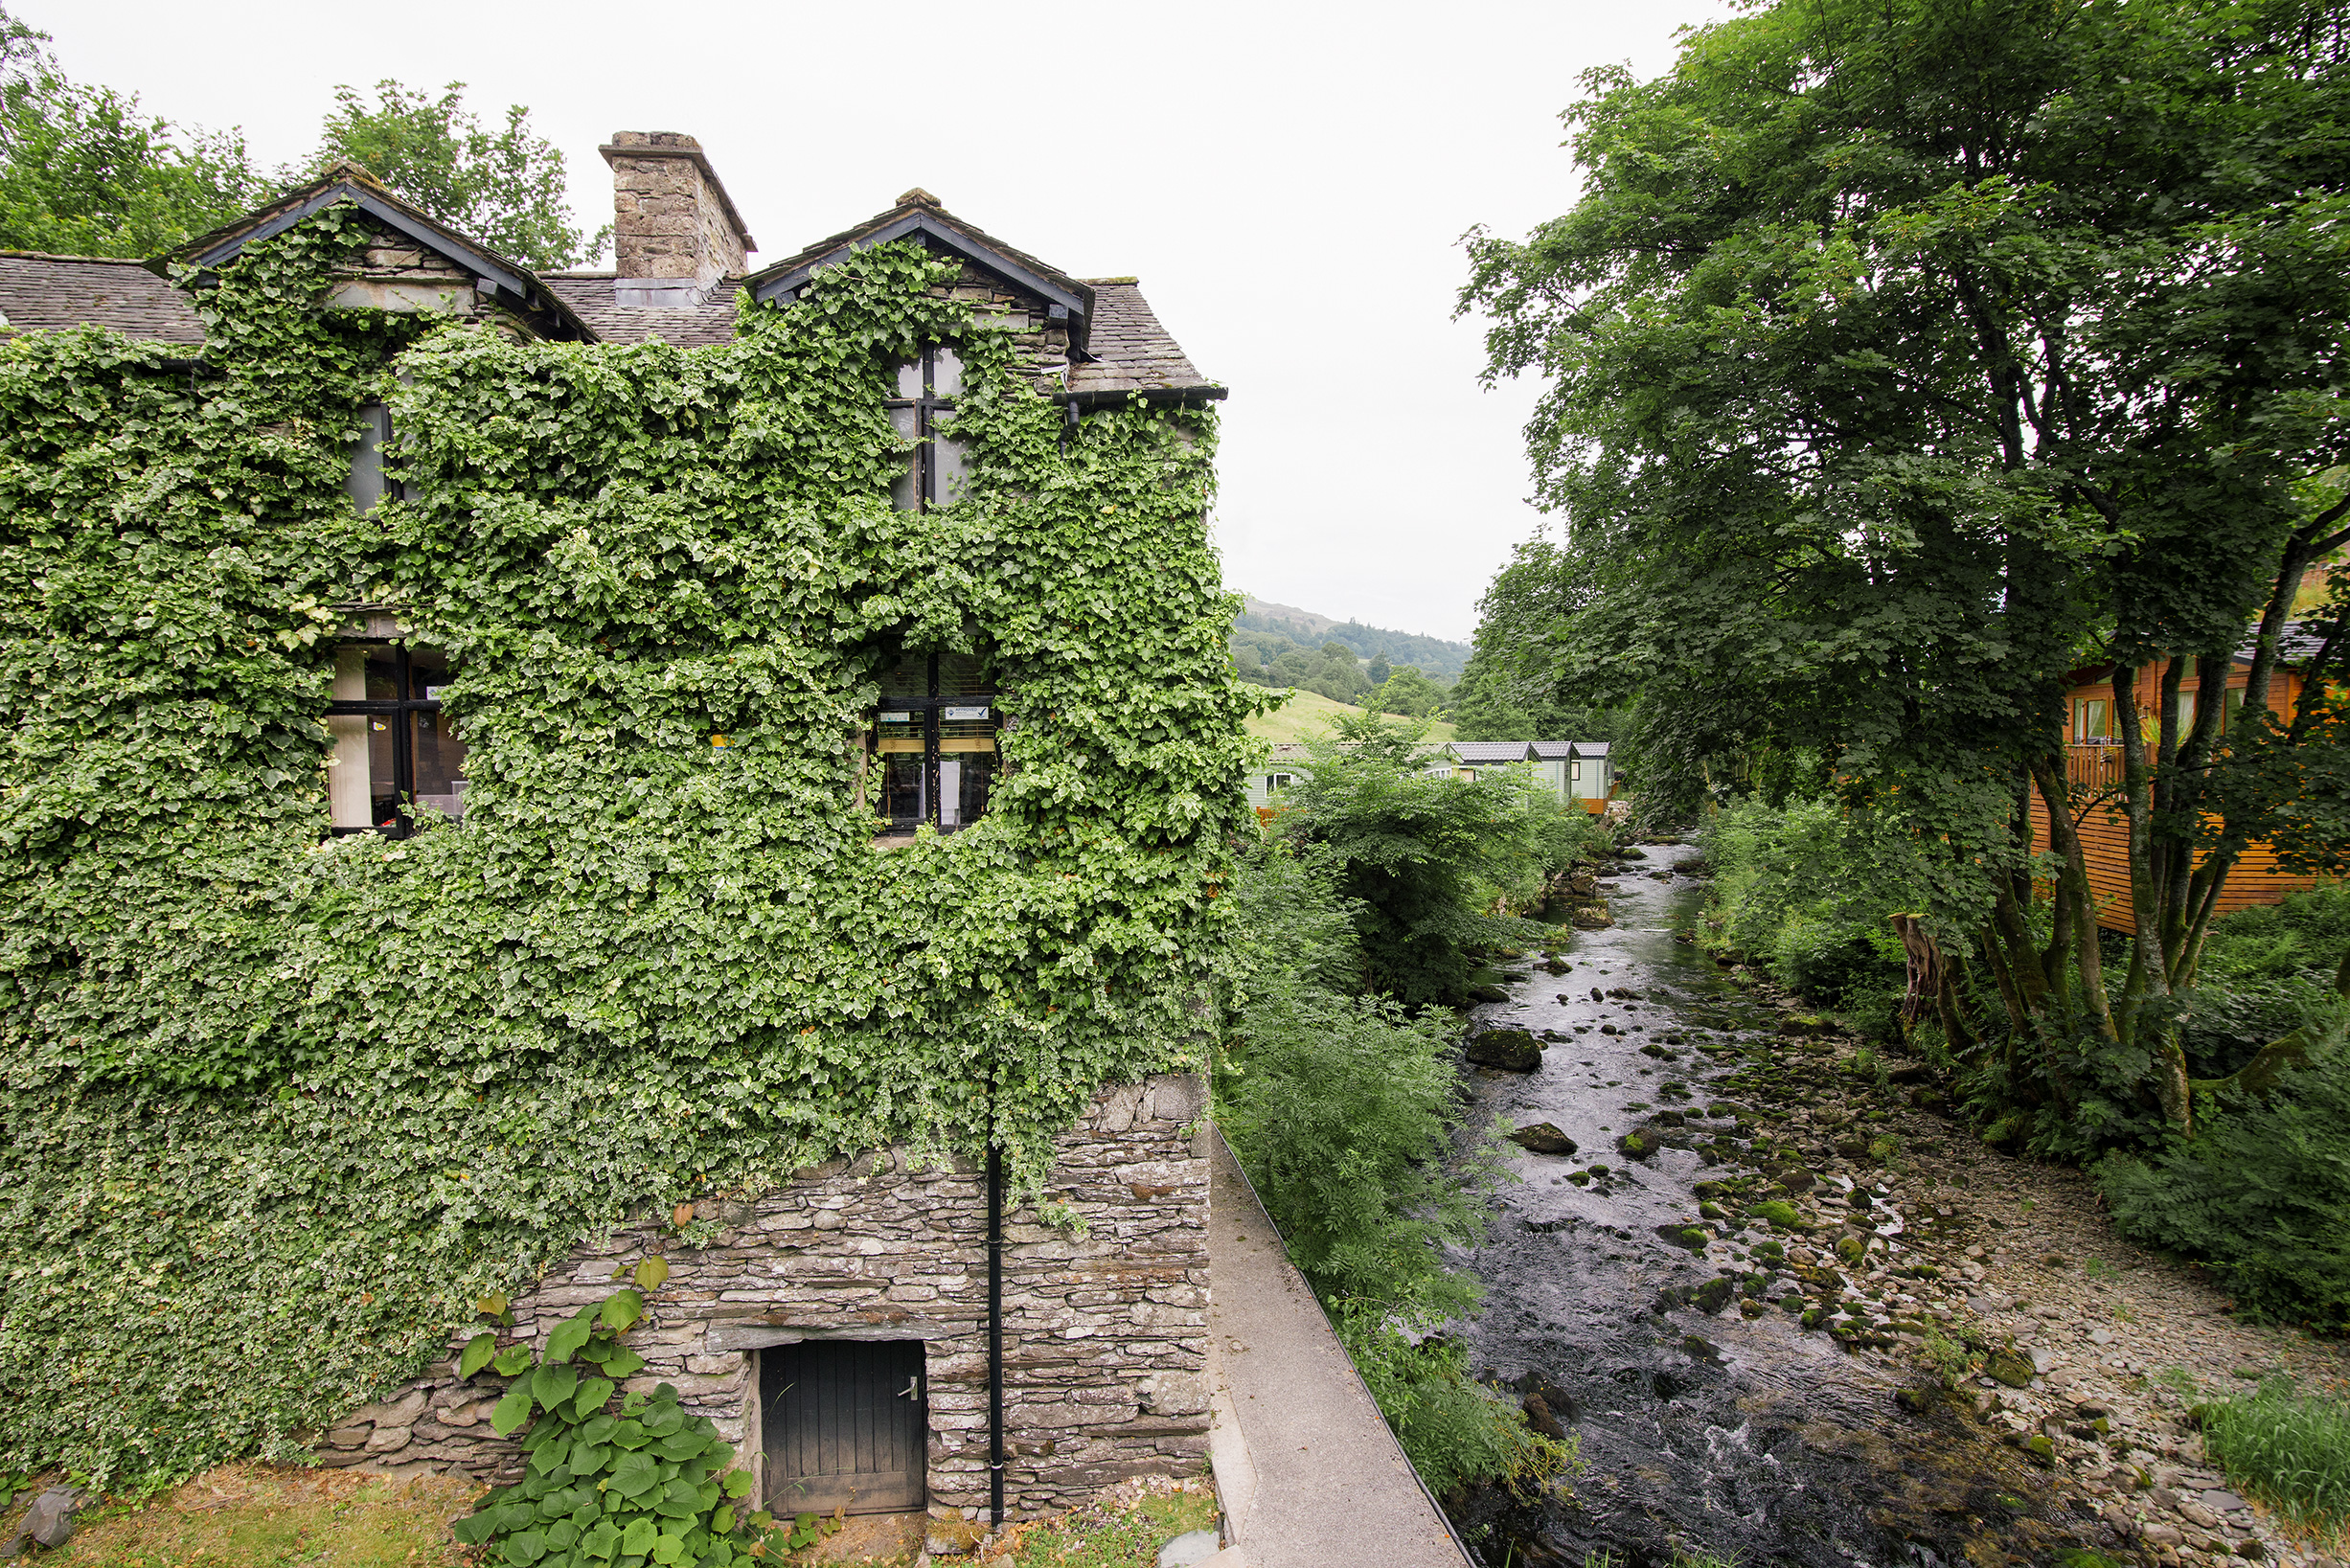 Historic Architecture in Troutbeck, Lake District, United Kingdom